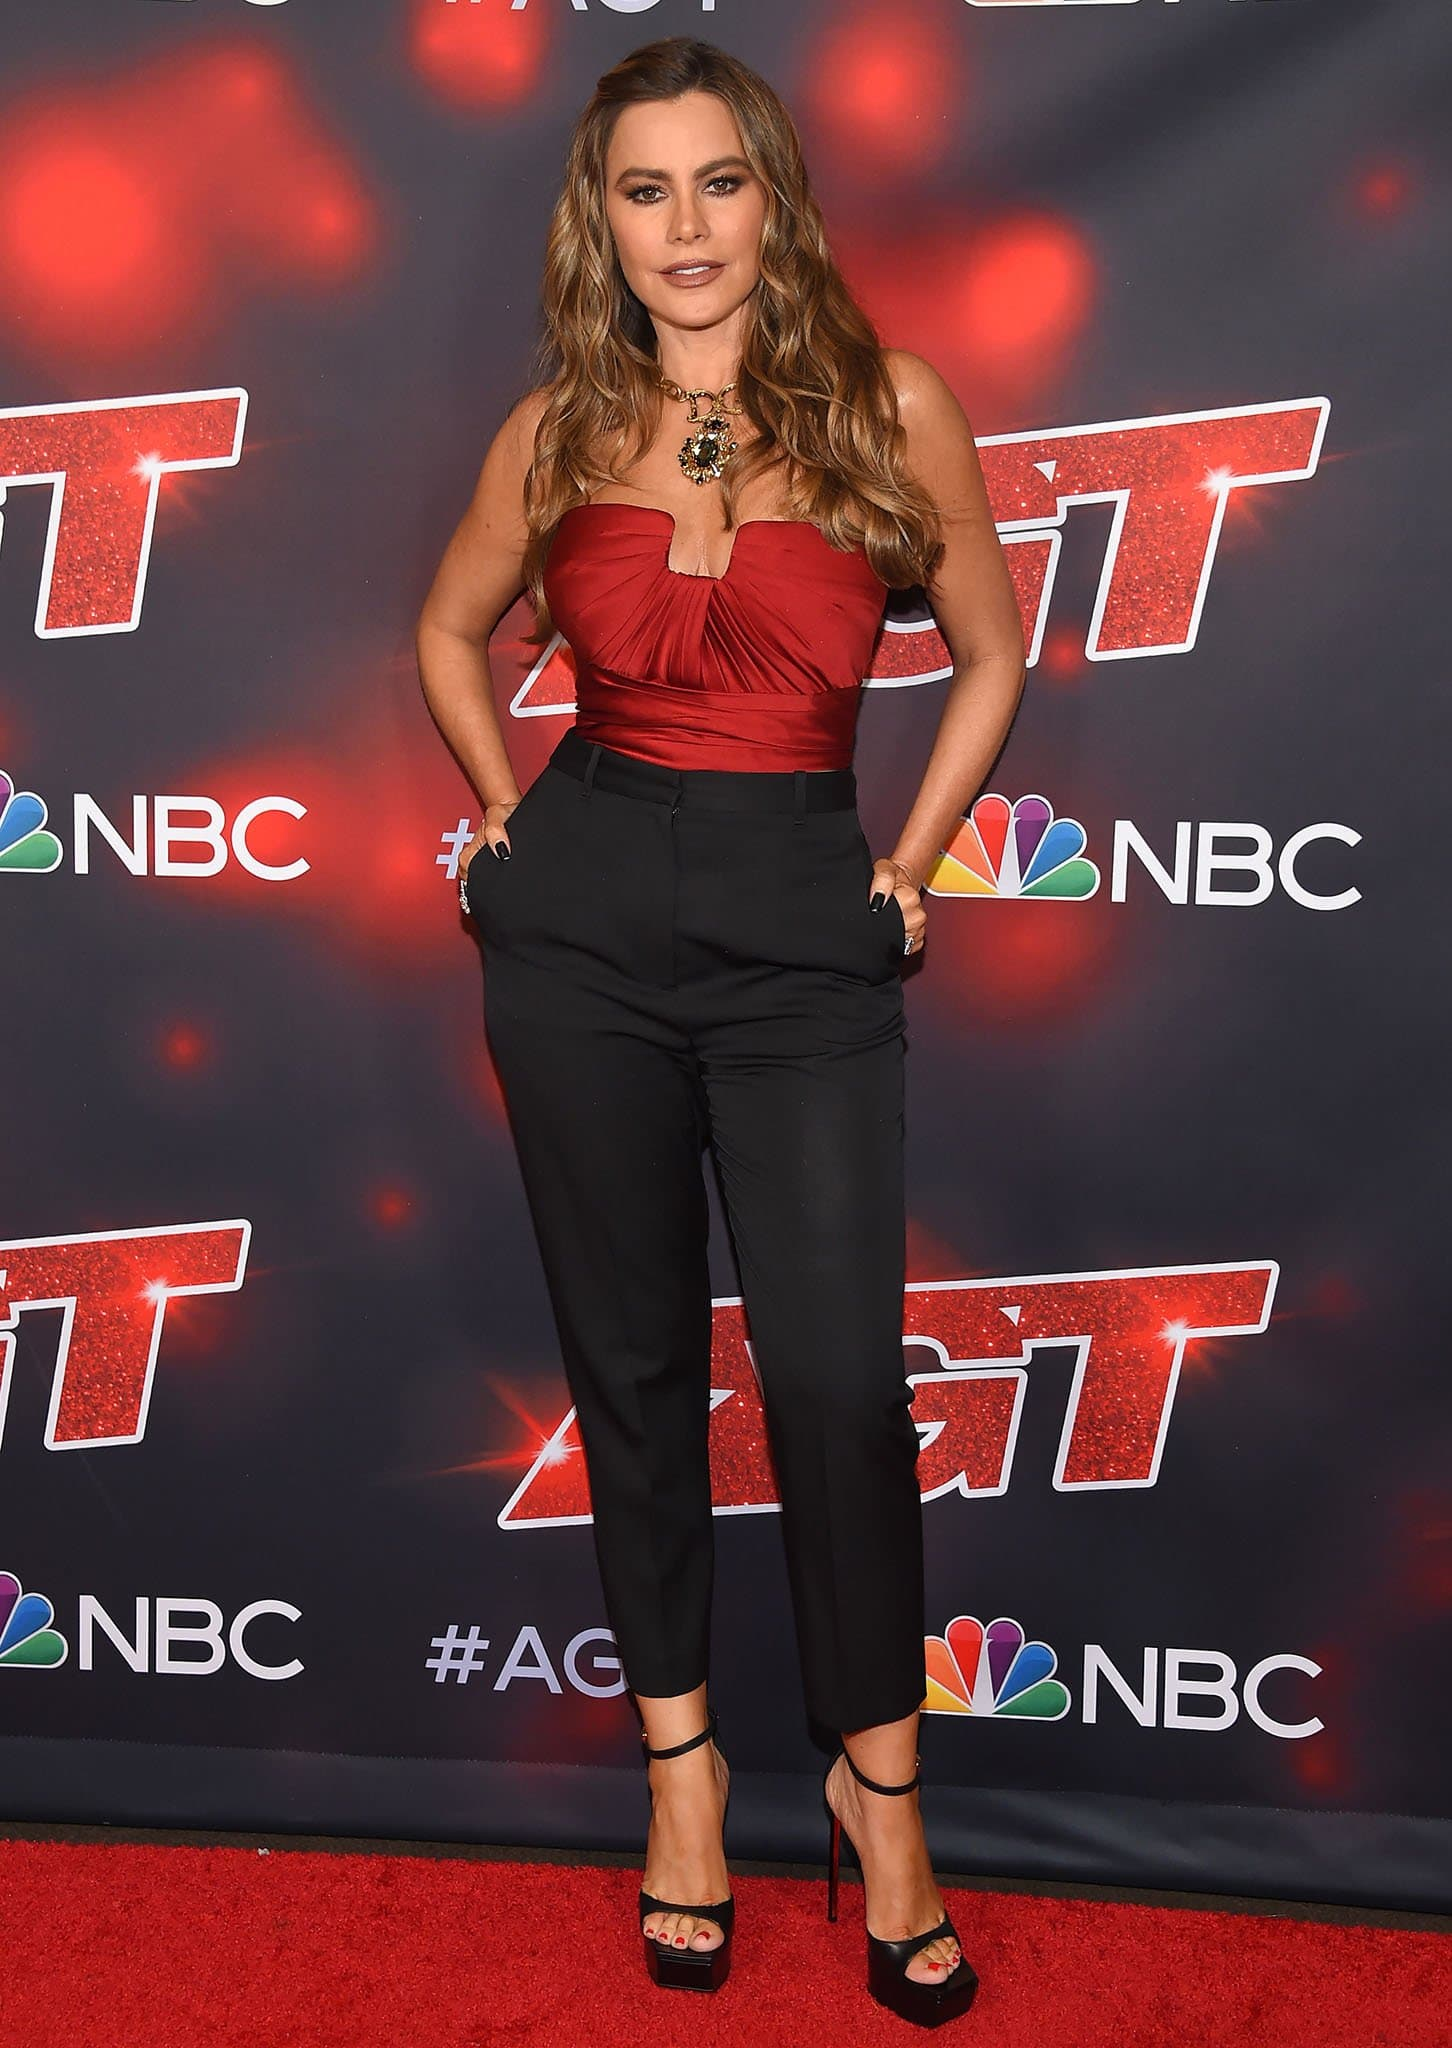 Sofia Vergara puts her hourglass figure on display in Alexander McQueen red bustier top and cigarette pants during the first night of the AGT Finale on September 14, 2021